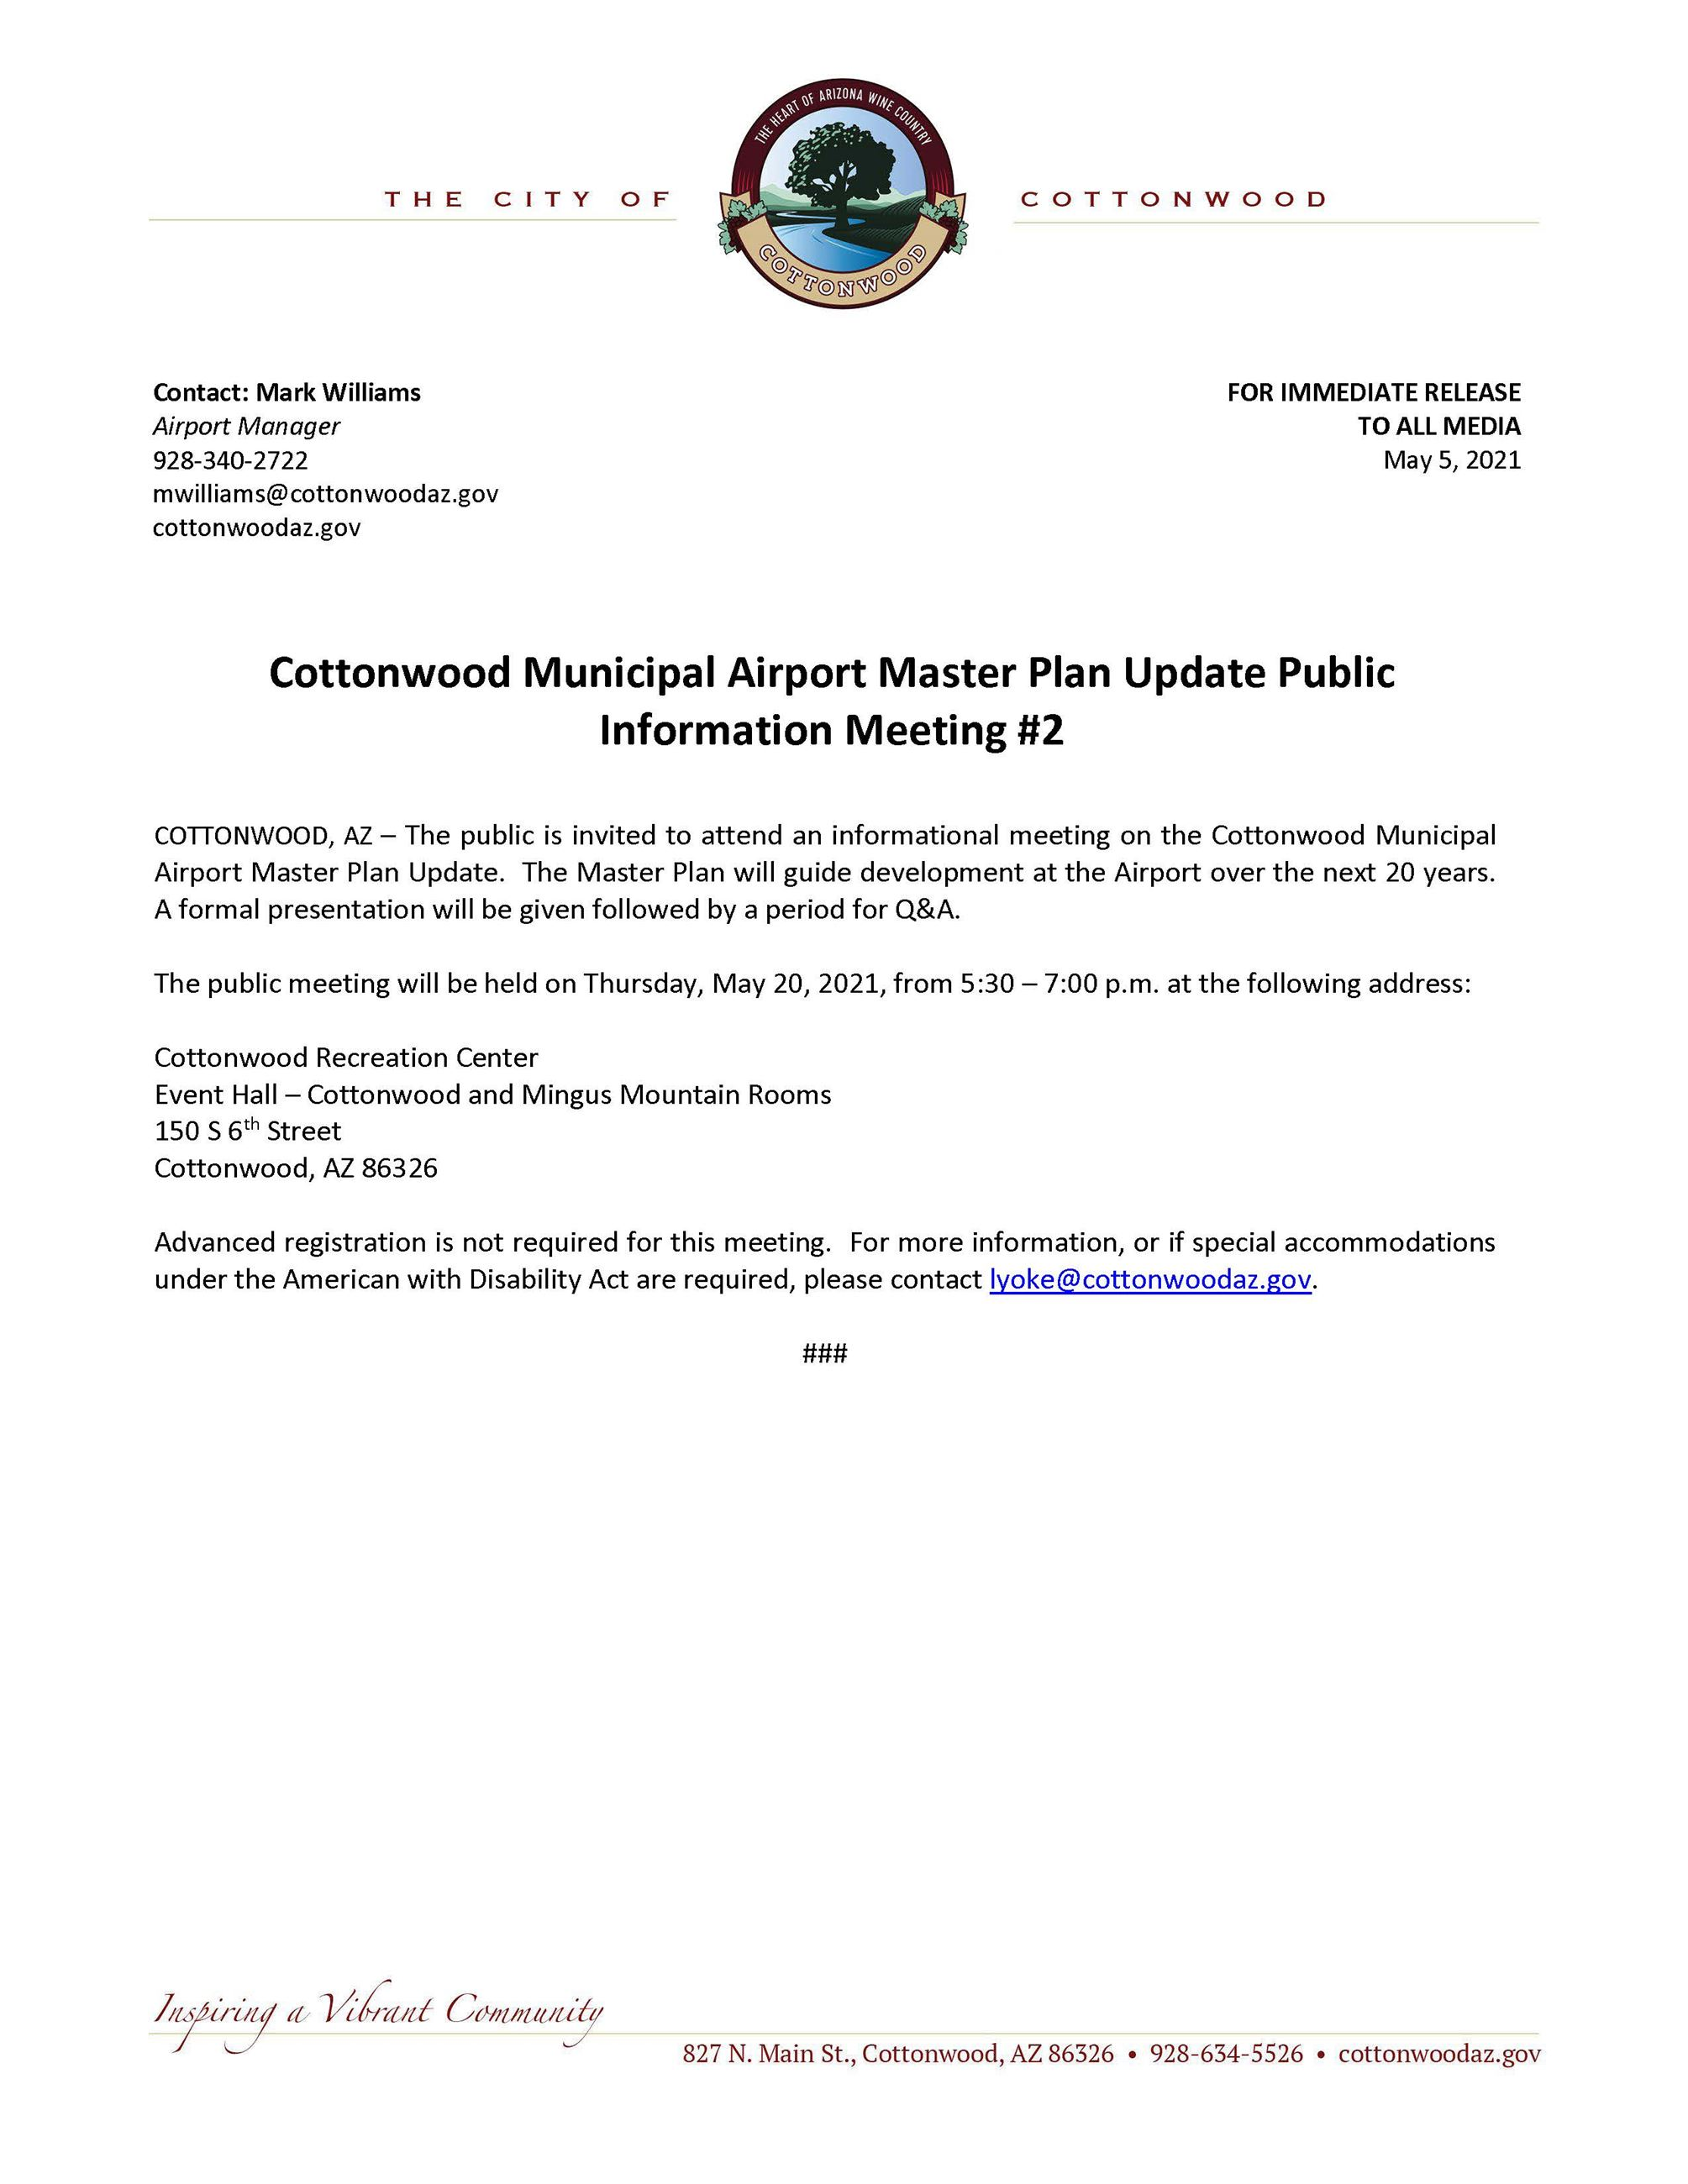 PRESS RELEASE - Cottonwood Municipal Airport Master Plan Update Public Information Meeting